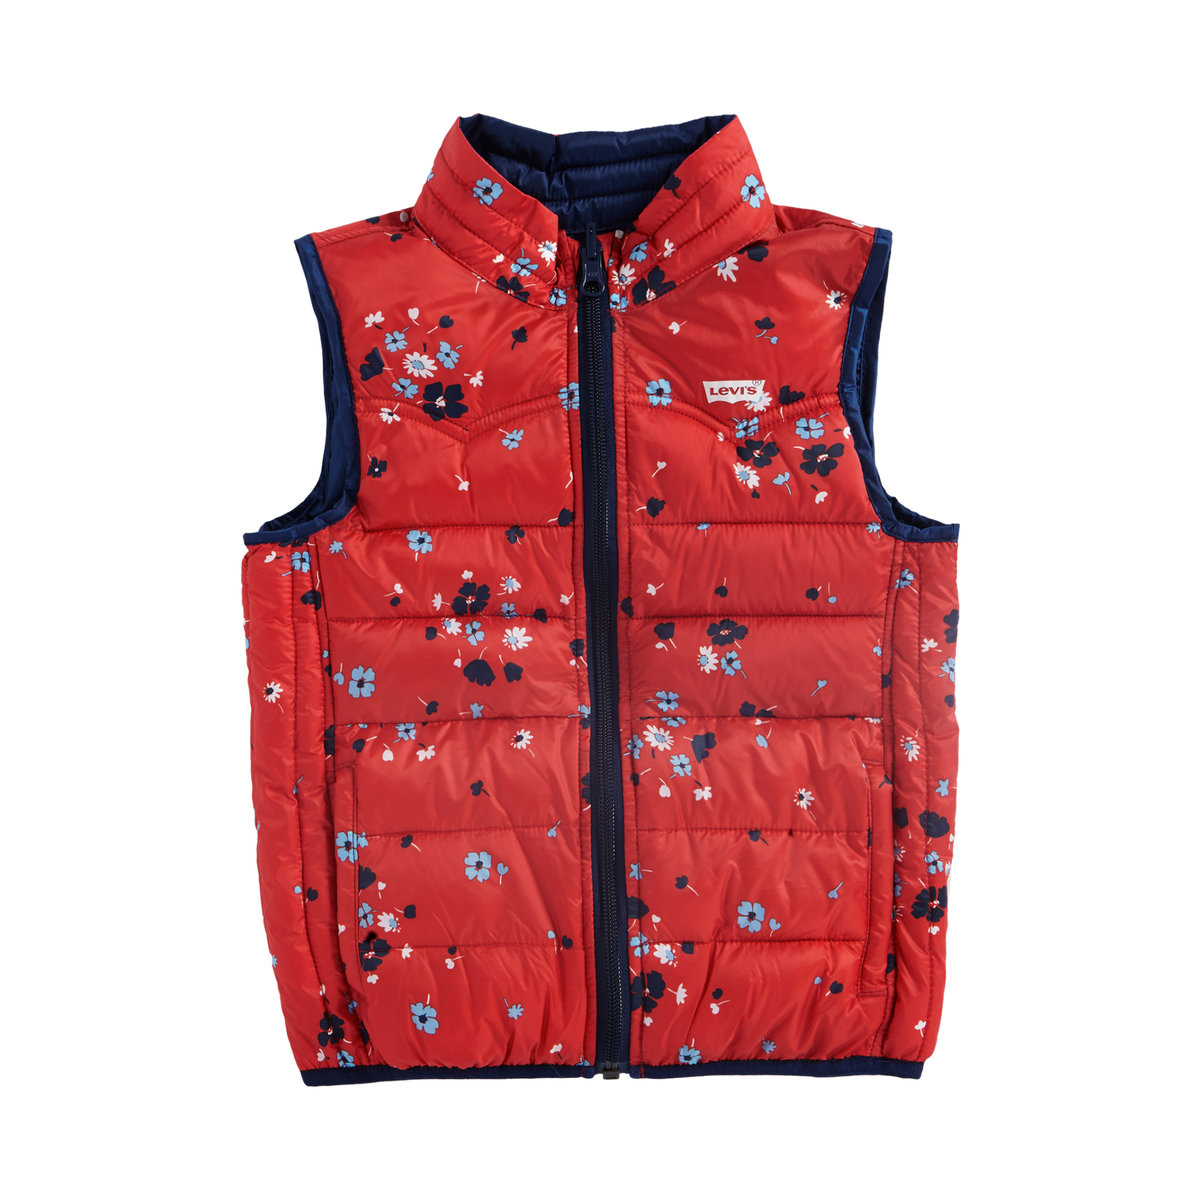 LEVI'S Babies' Double-sided Vest